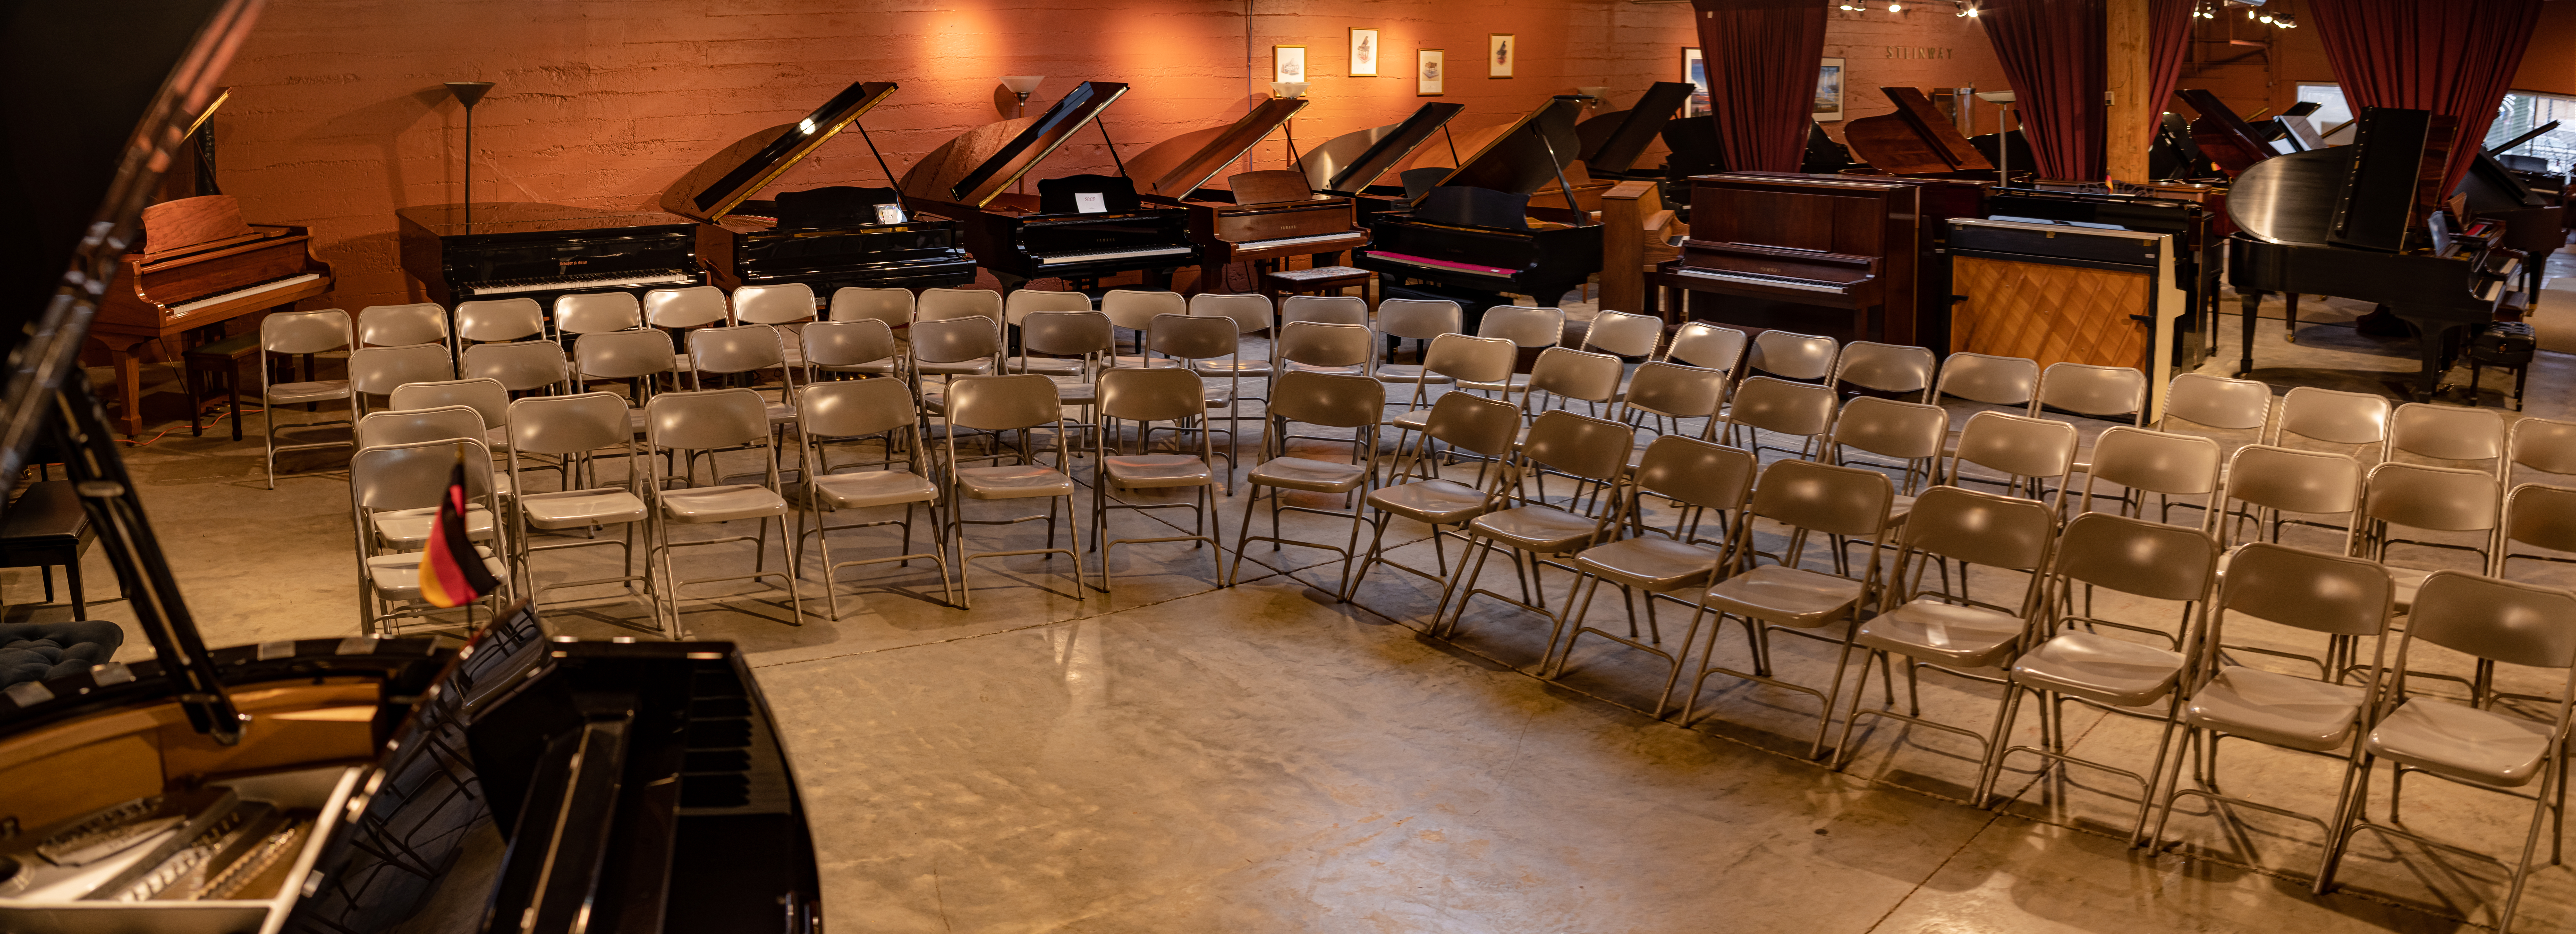 piano-and-recital-event-rental-space-at-michelles-piano-in-portland-or-pic2